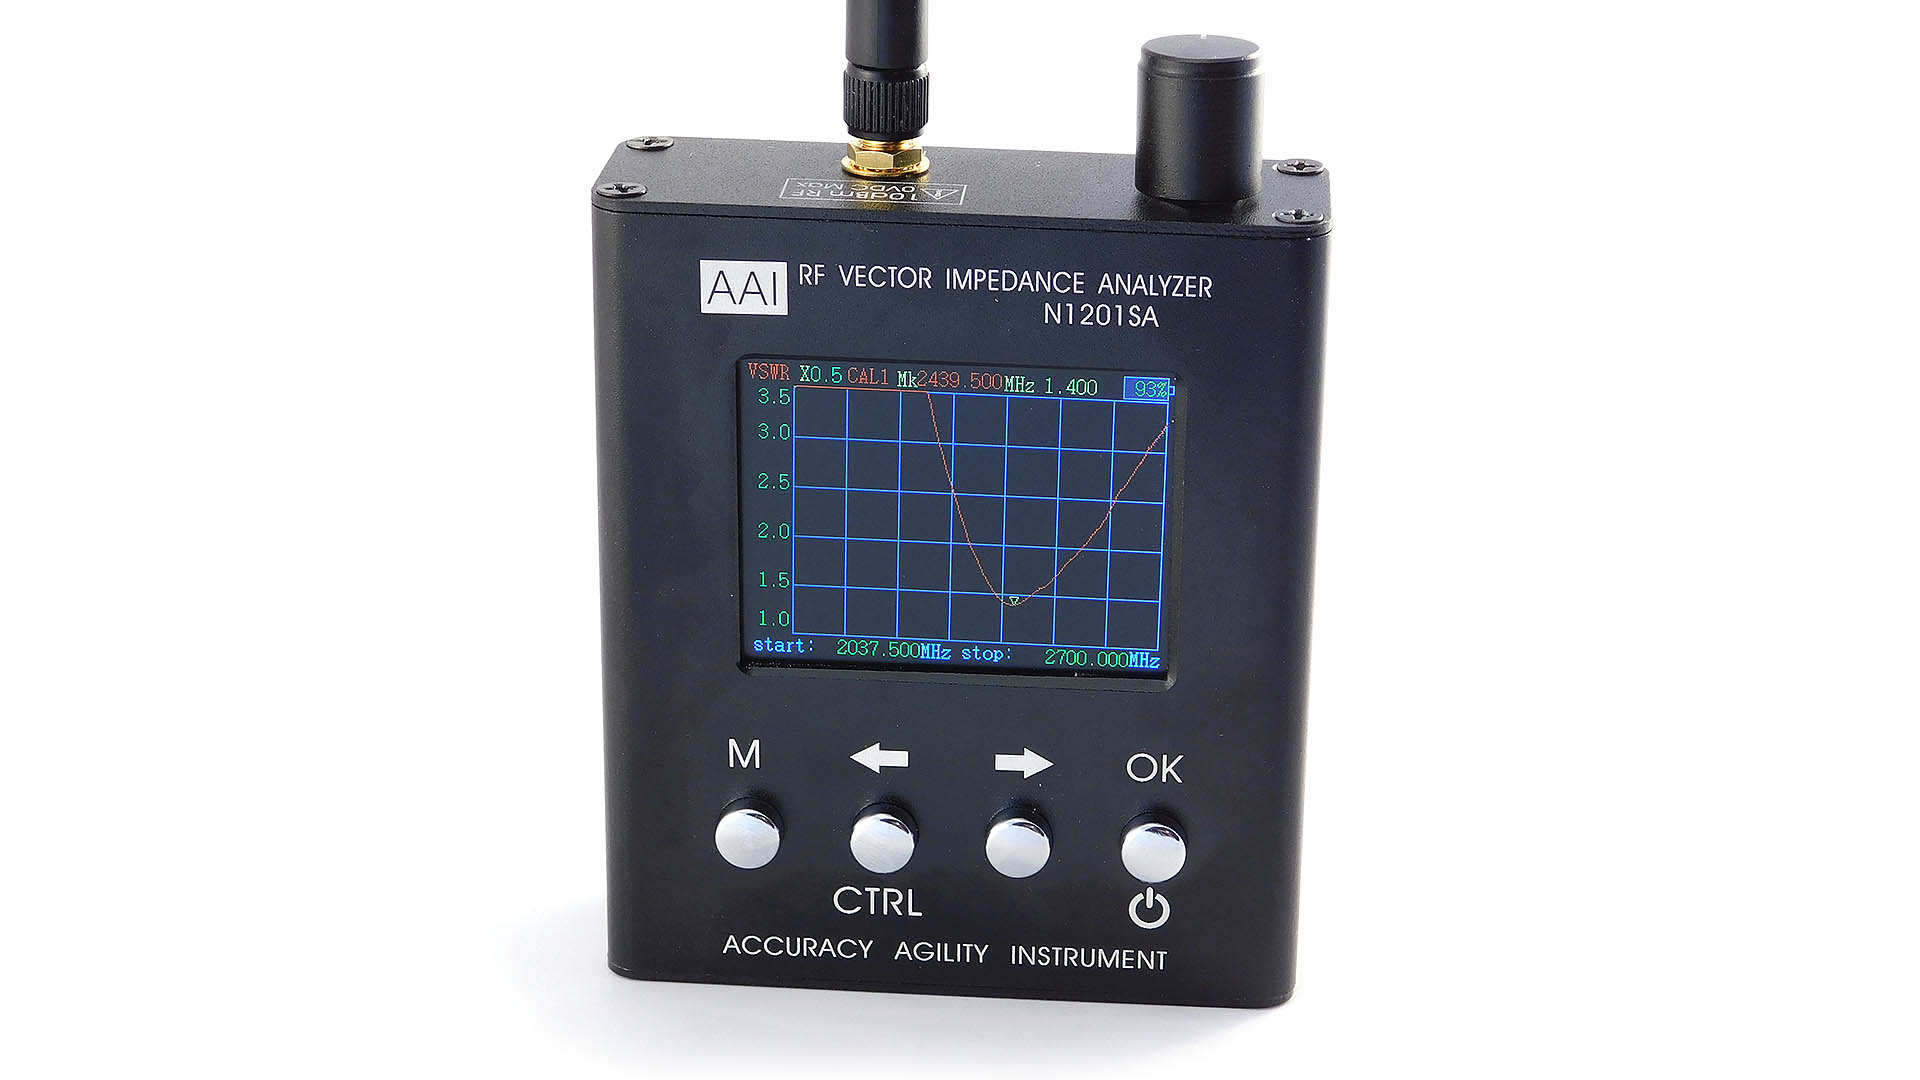 Nettigo: AAI N1201SA RF Vector Impedance Analyzer with calibration kit